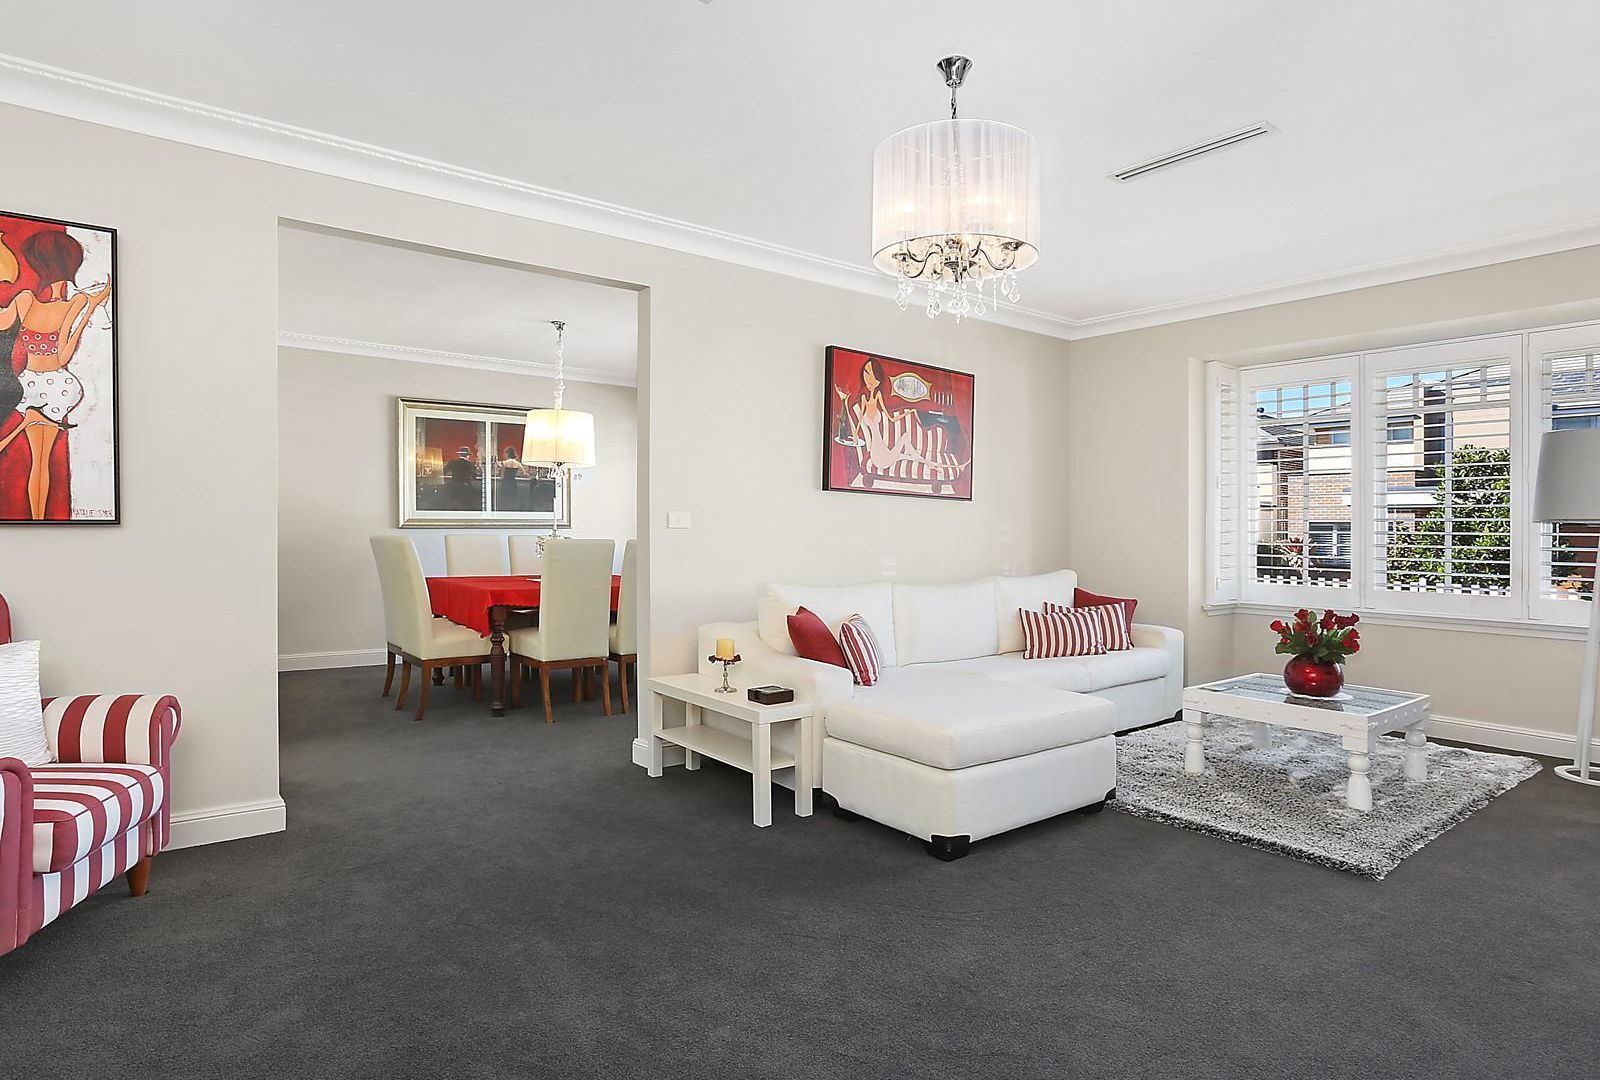 42 Bel Air Drive, Kellyville NSW 2155, Image 2